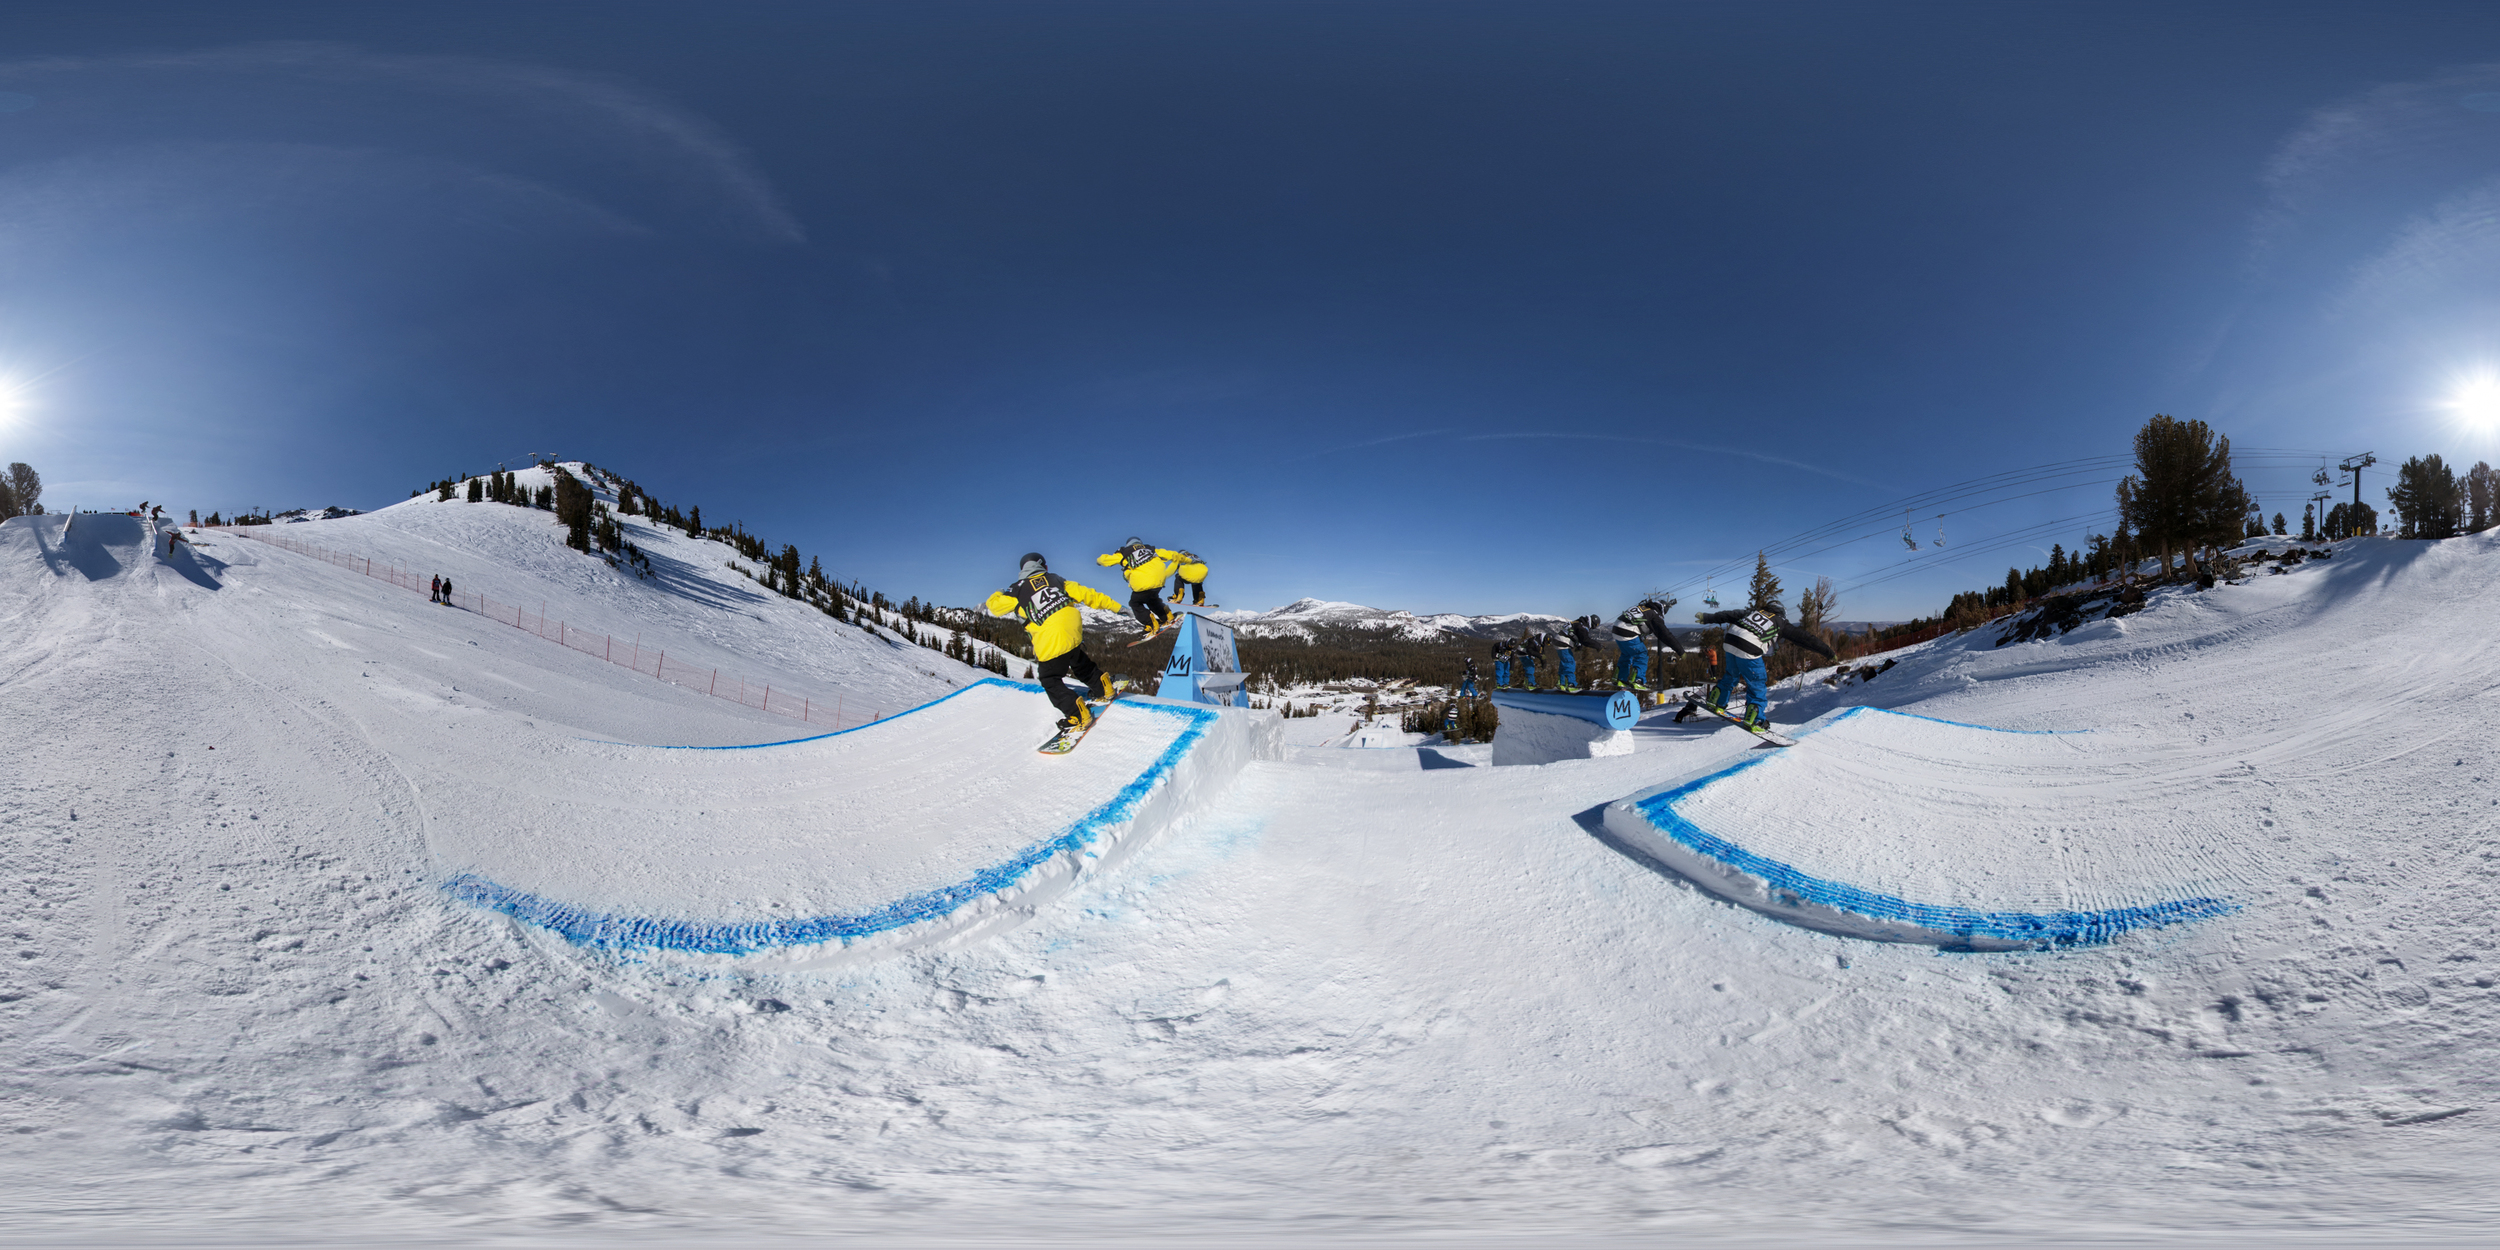 Action Sequence 360º at U.S. Grand Prix Ski / Snowboard Competition